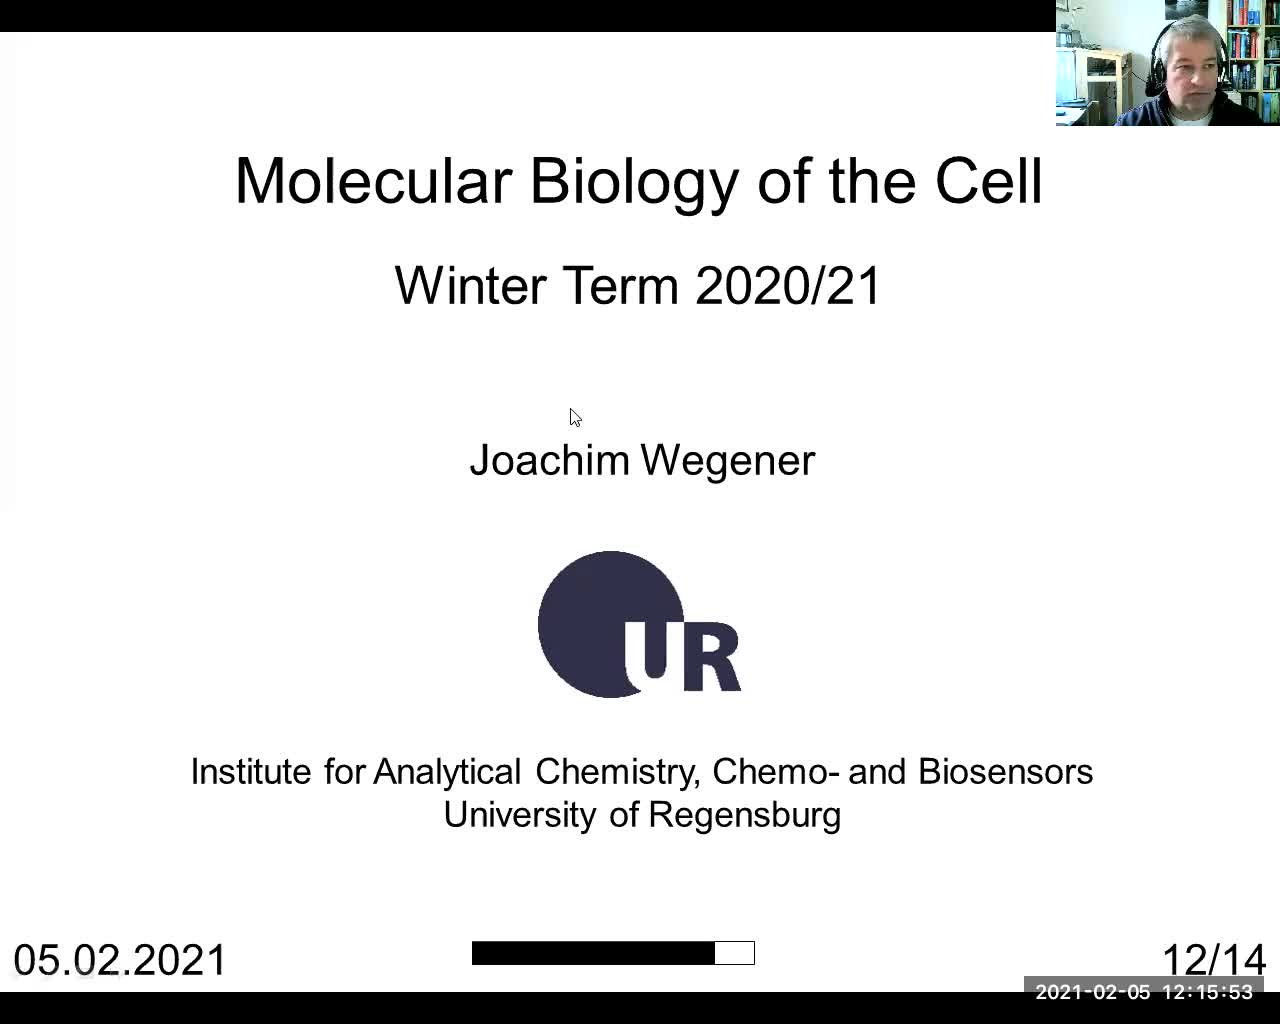 Vorlesung Molecular Biology of the Cell - Nr. 12 - 05.02.2021 - ZOOM